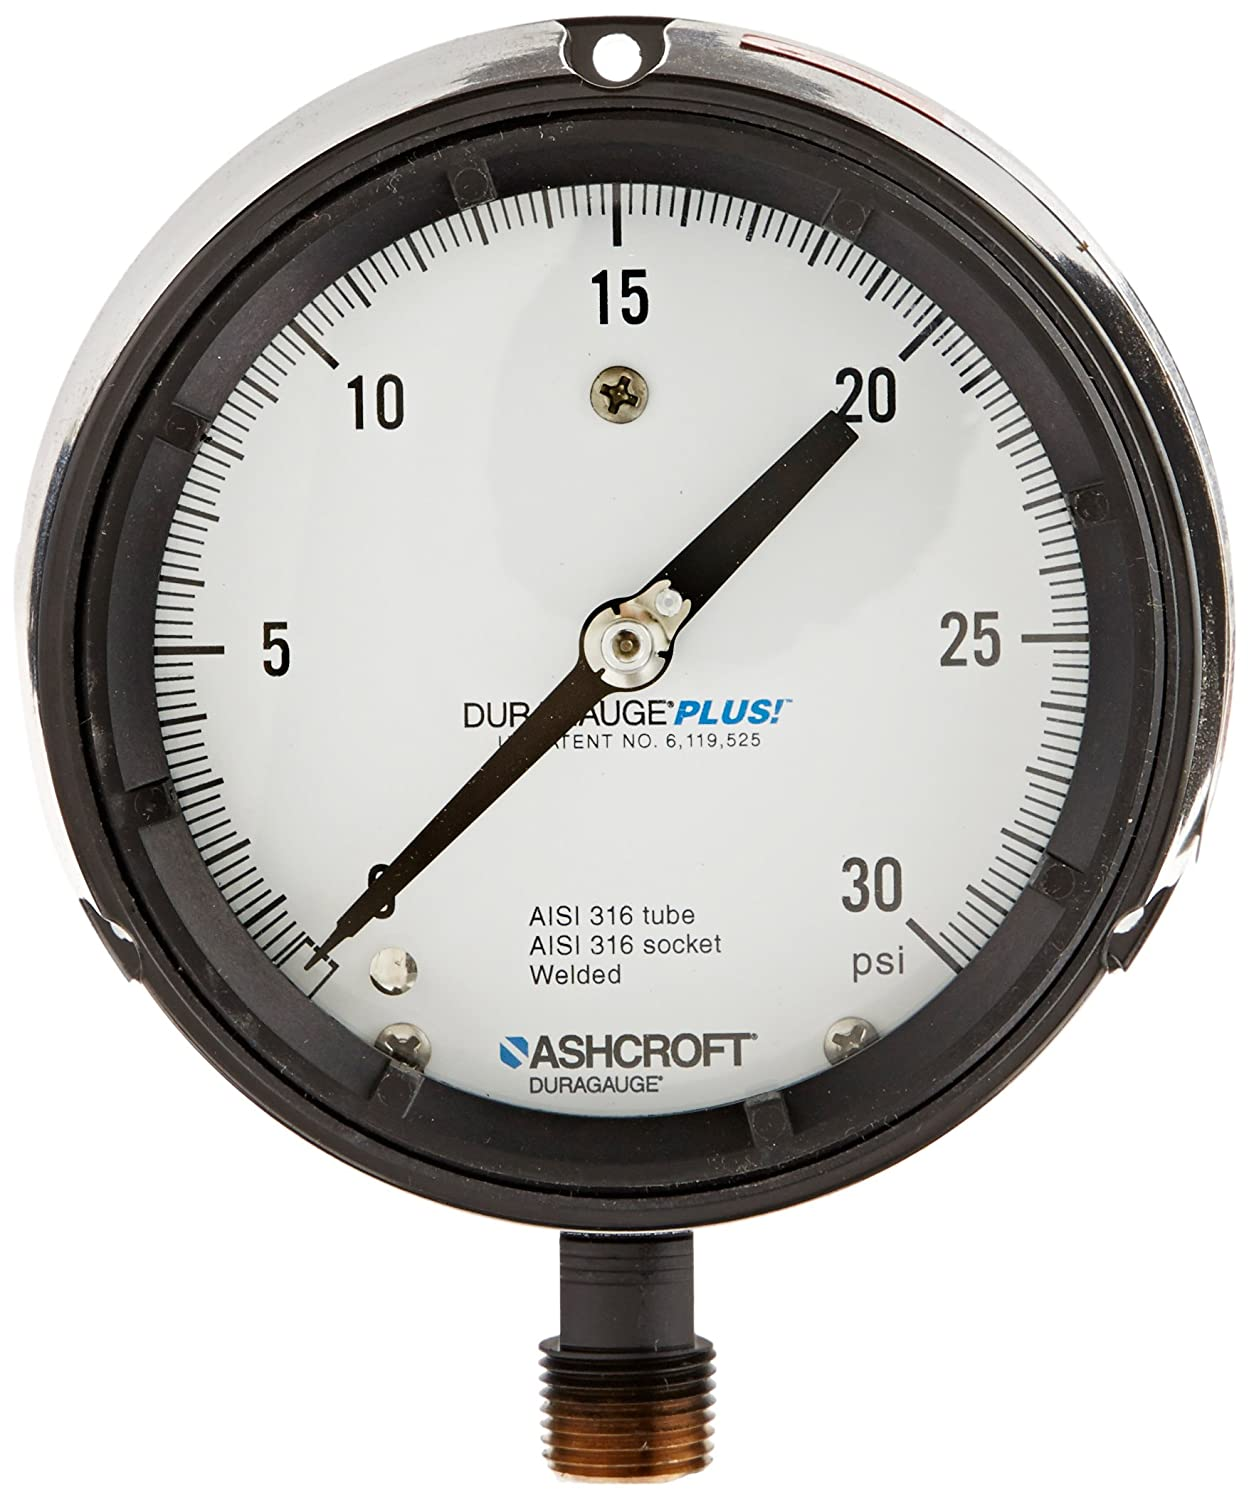 Ashcroft Duragauge Type 1279 Black Phenolic Case Pressure Gauge with PLUS Performance Option, 316 Stainless Steel Bourdon Tube and Tip, 316 Stainless Steel Socket, Solid Front Case, 4.5